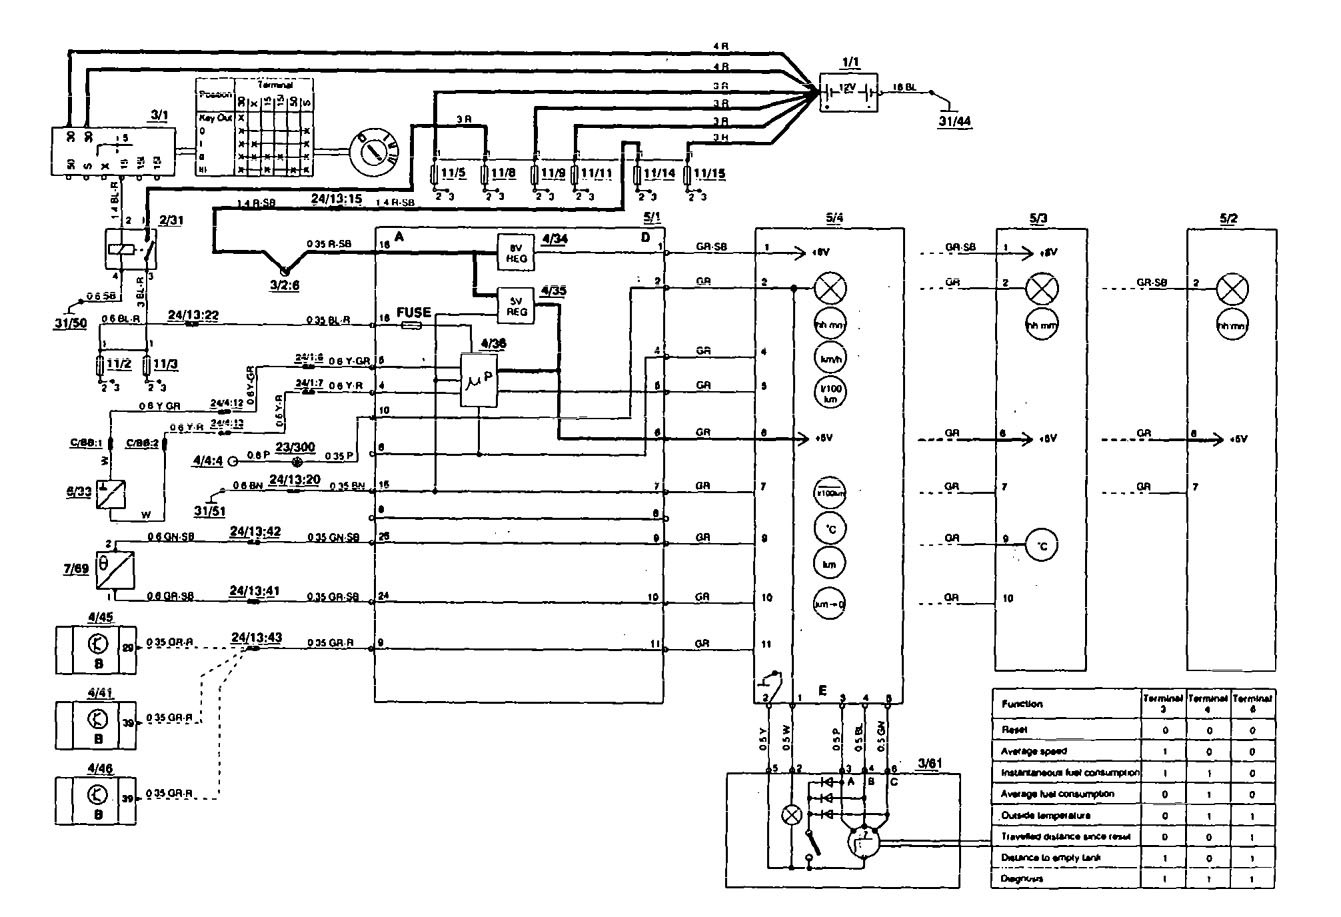 Volvo 850 Car Stereo Wiring Diagram : Volvo wiring diagram master electric motor